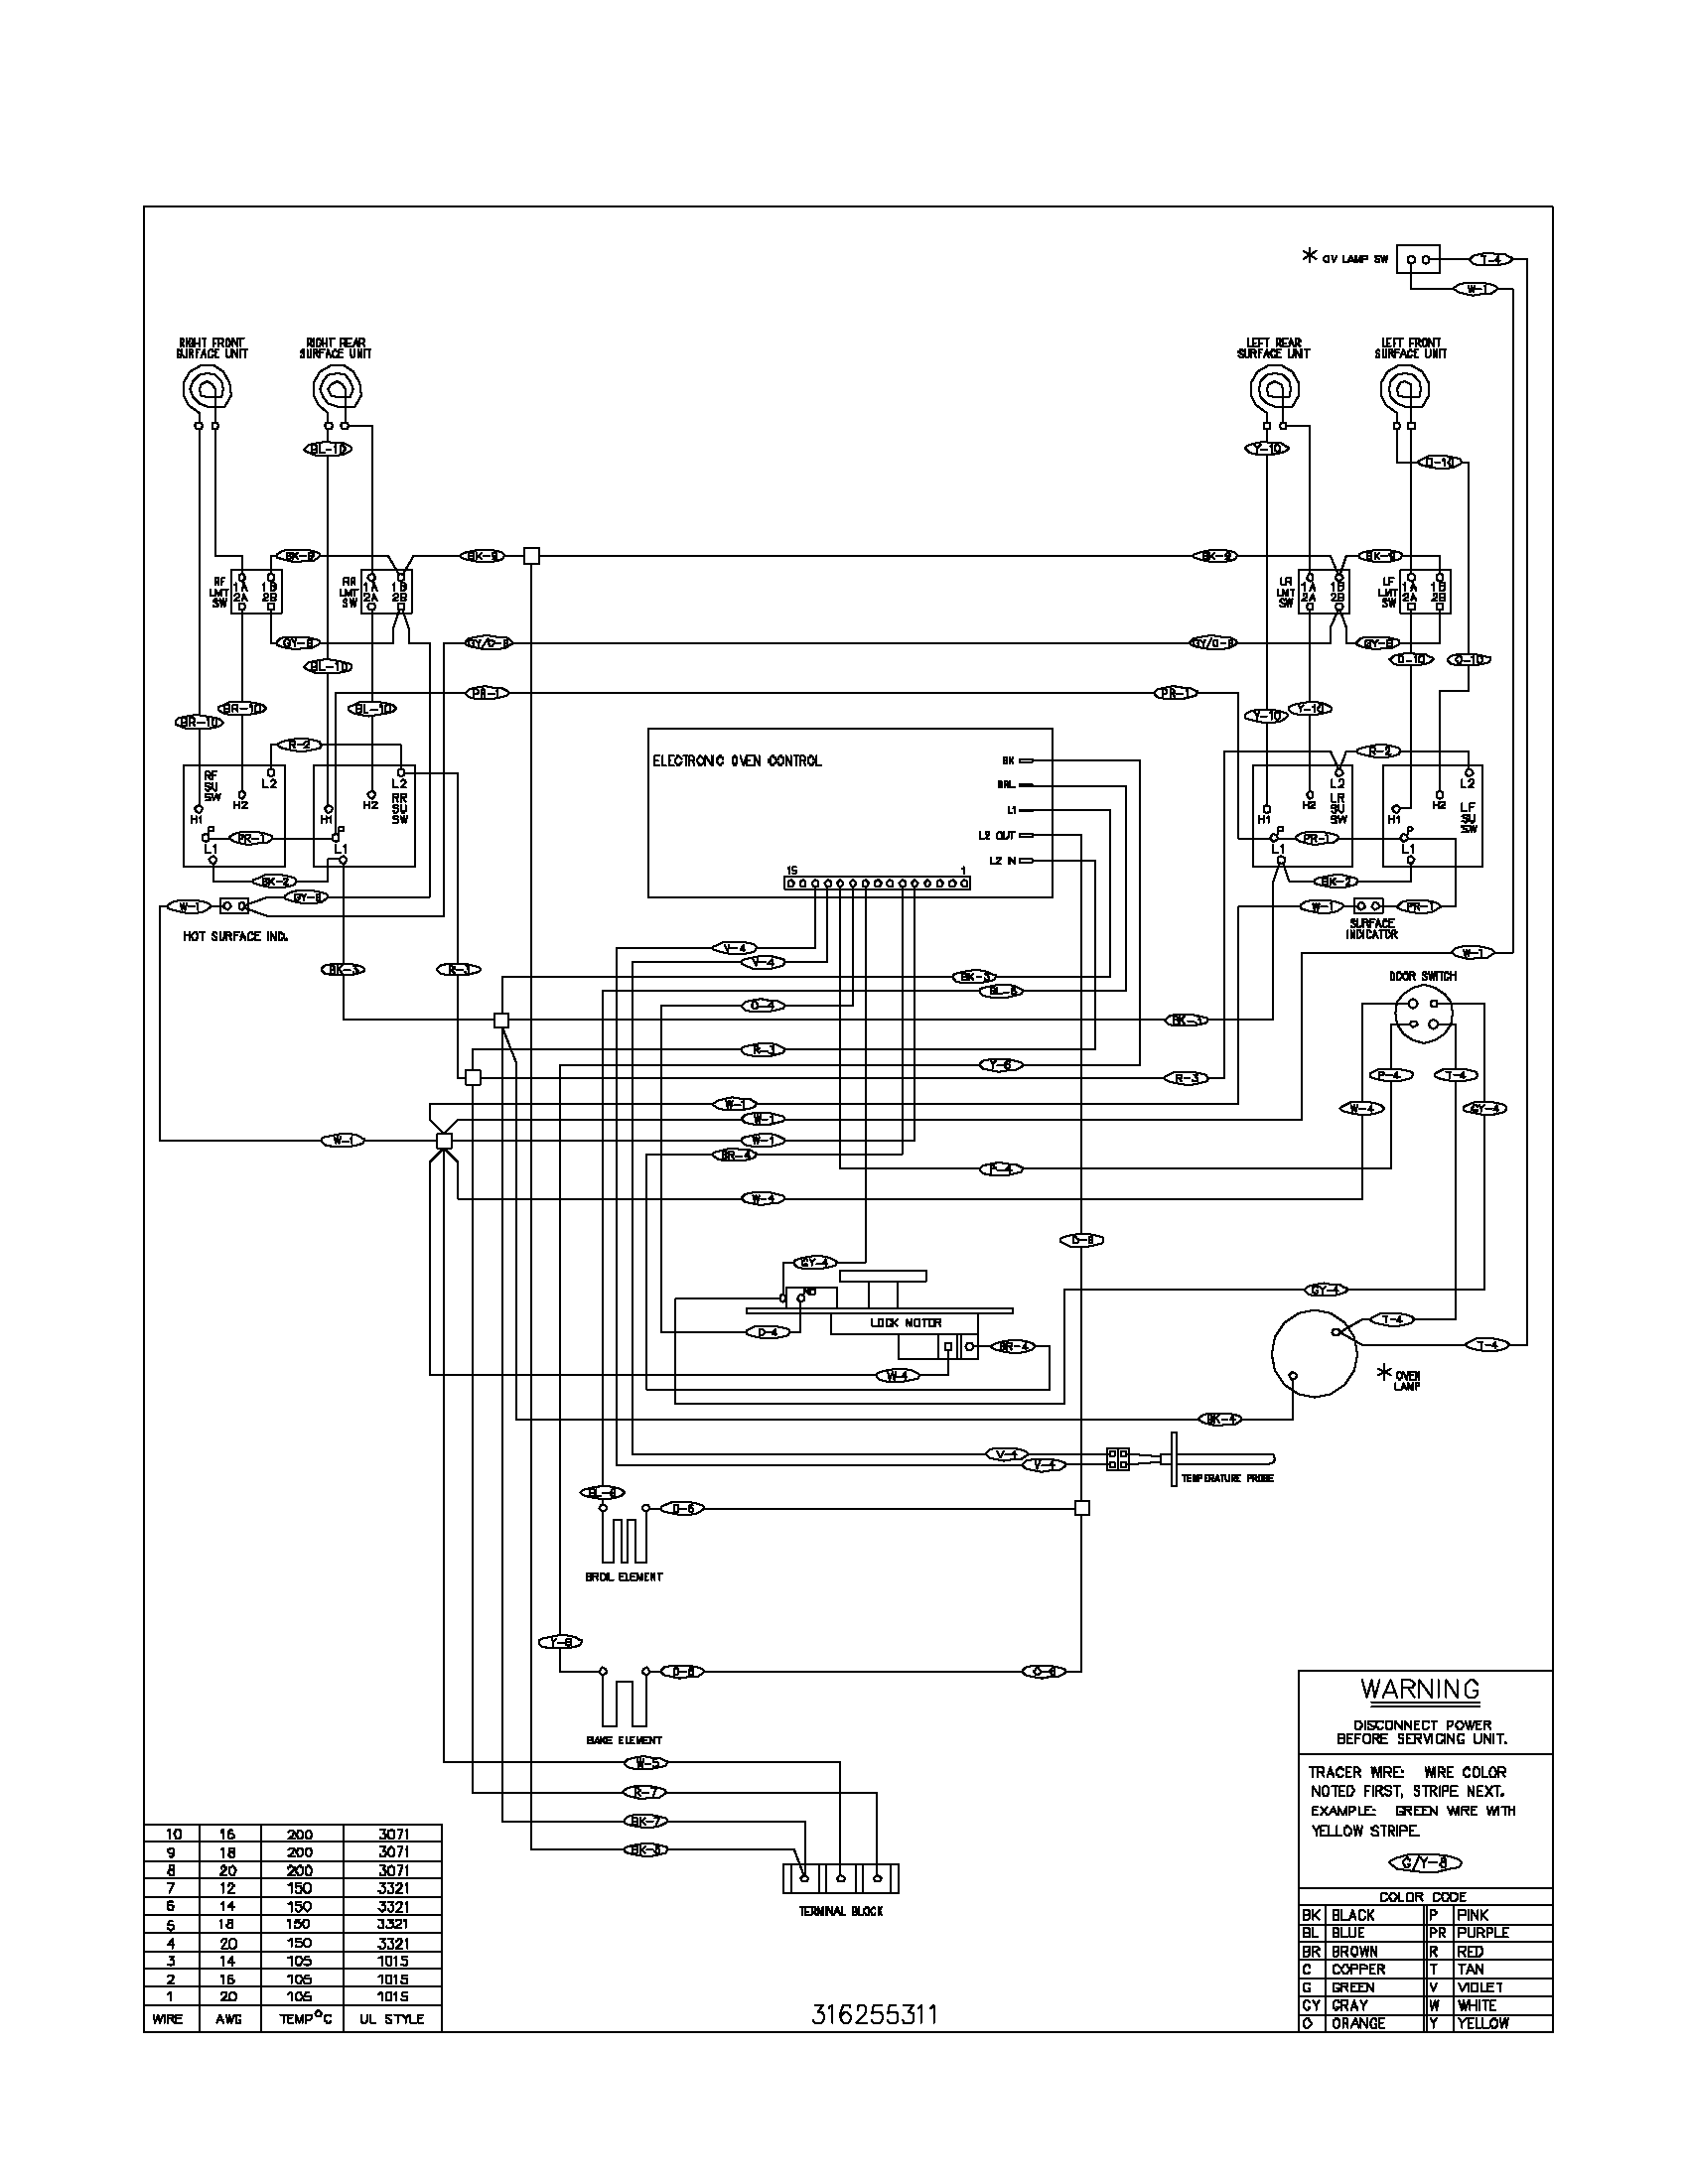 Ge Electric Oven Wiring Diagram Excellent Electrical Wall Library Rh 34 Boptions1 De Range